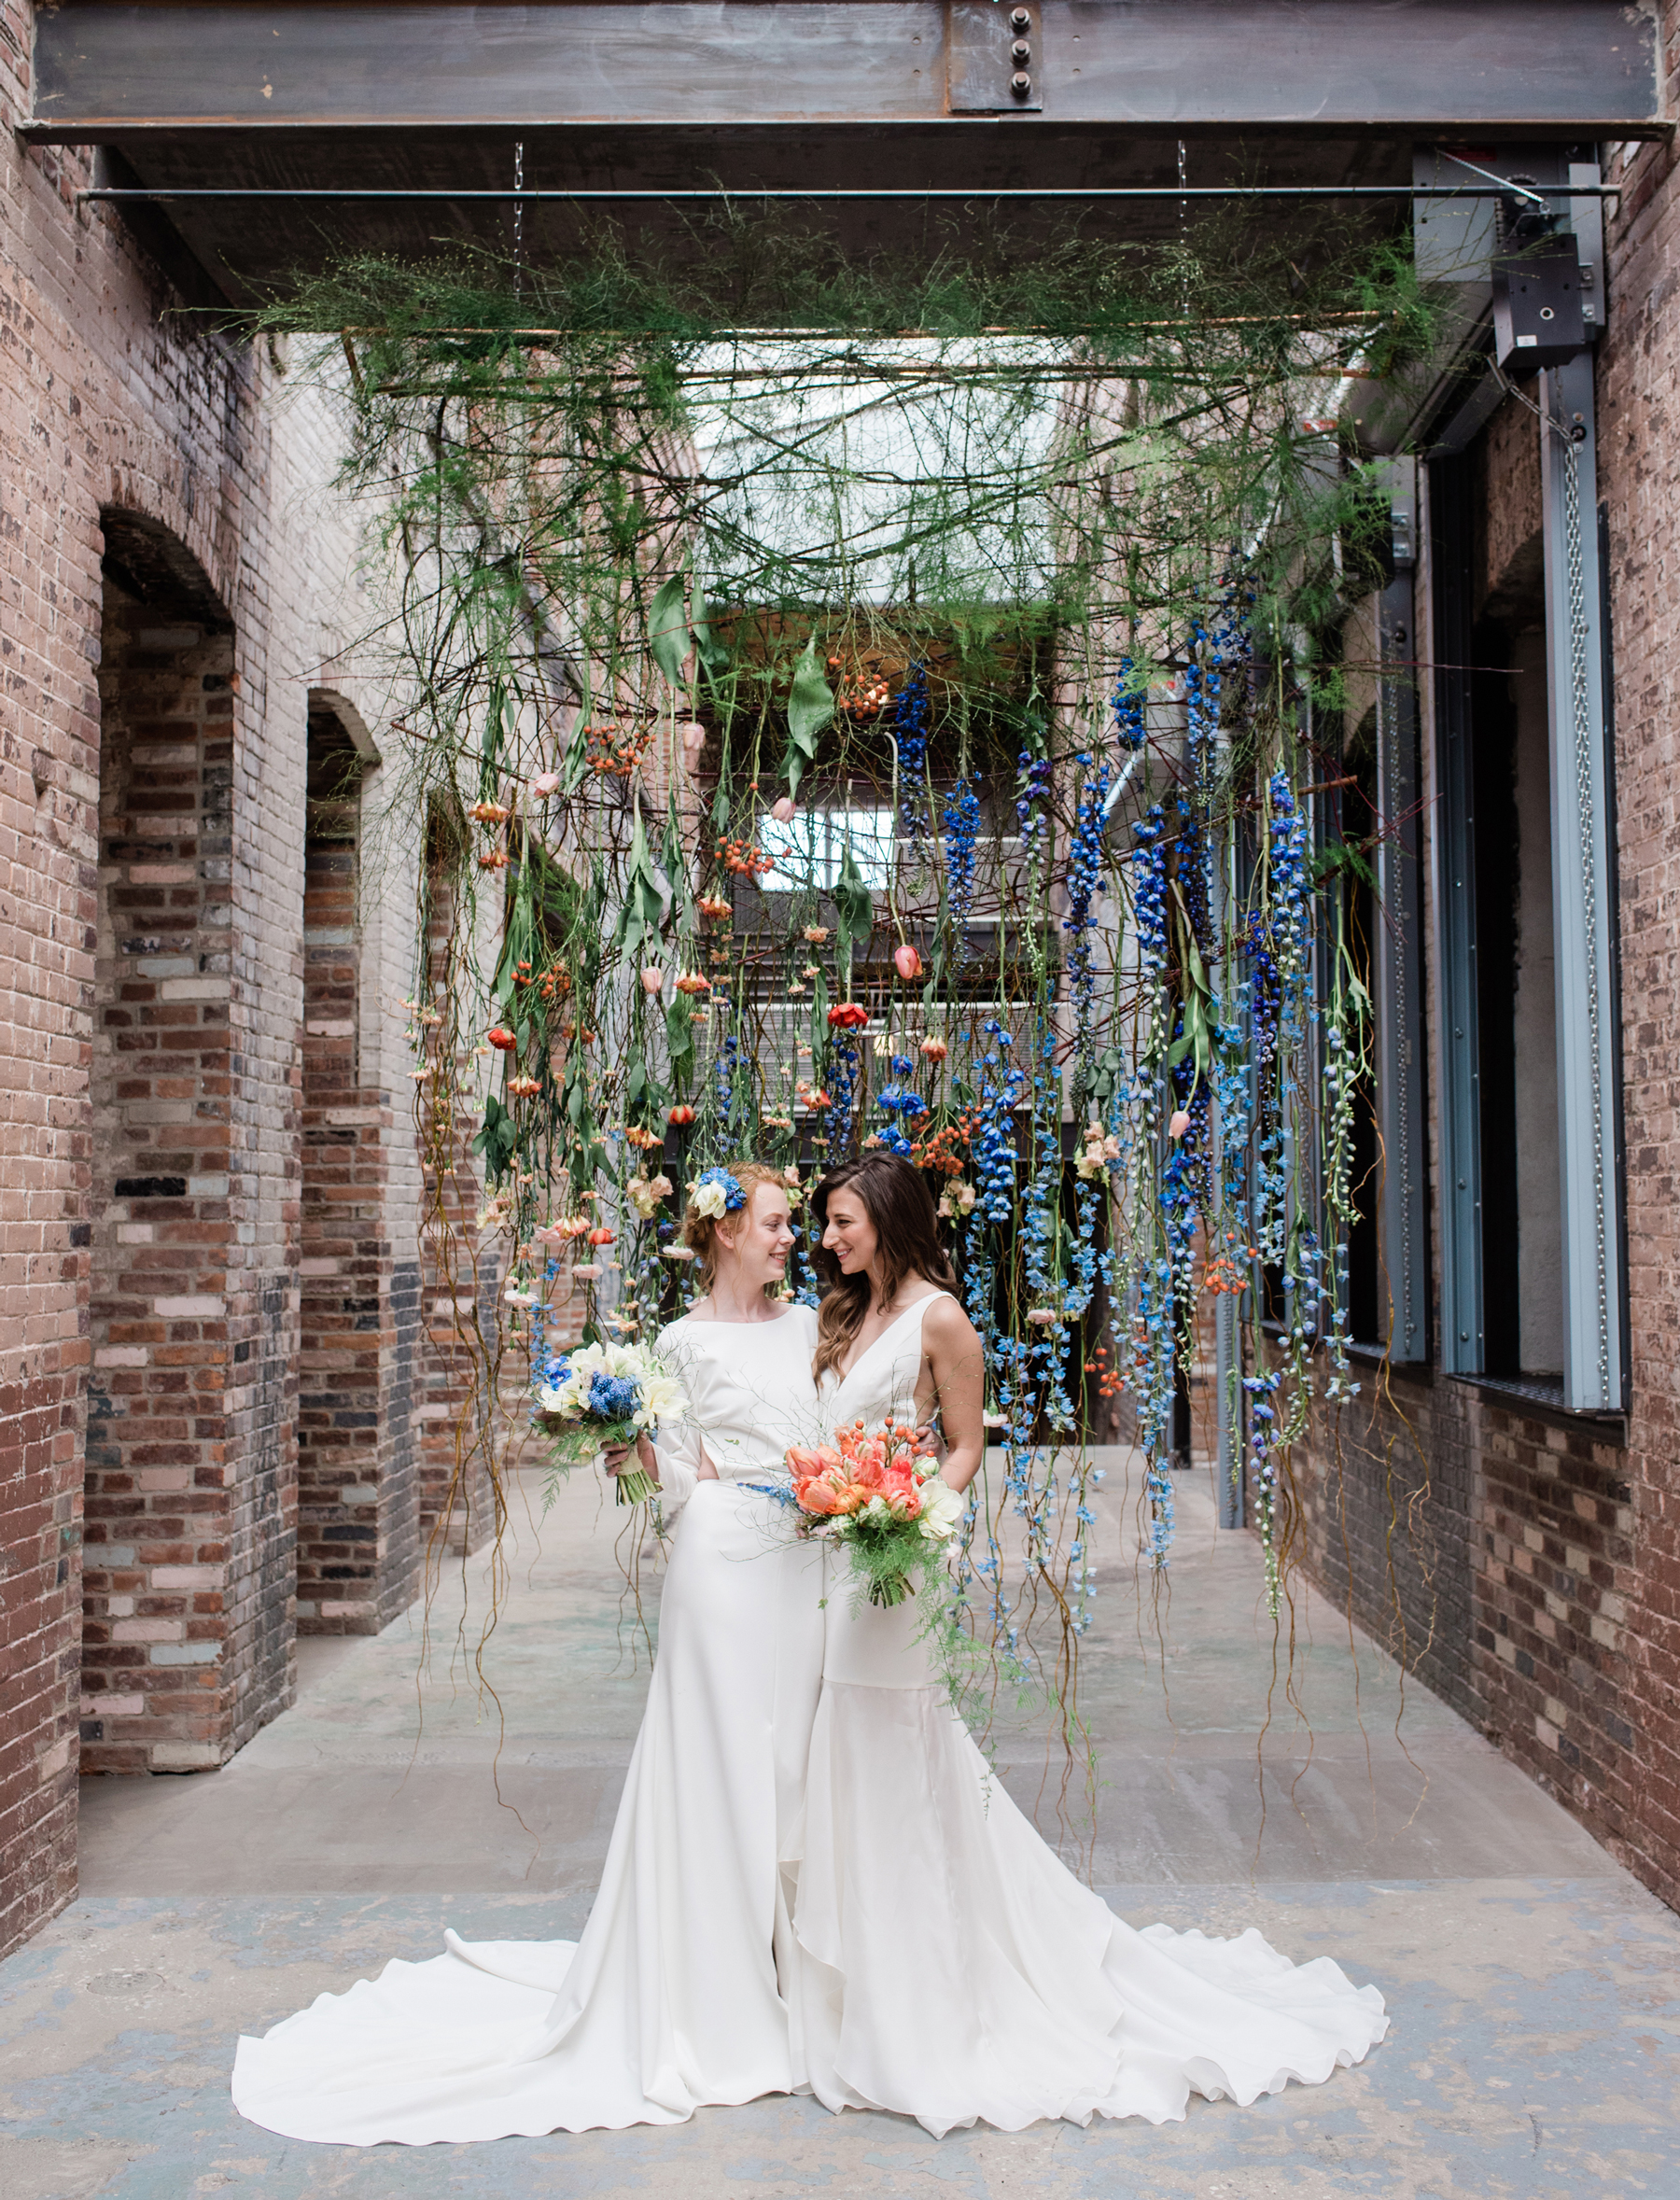 3-two-brides-flower-curtain-industrial-chic-mass-moca-wedding-hybl-fannin-design-1800cr.jpg